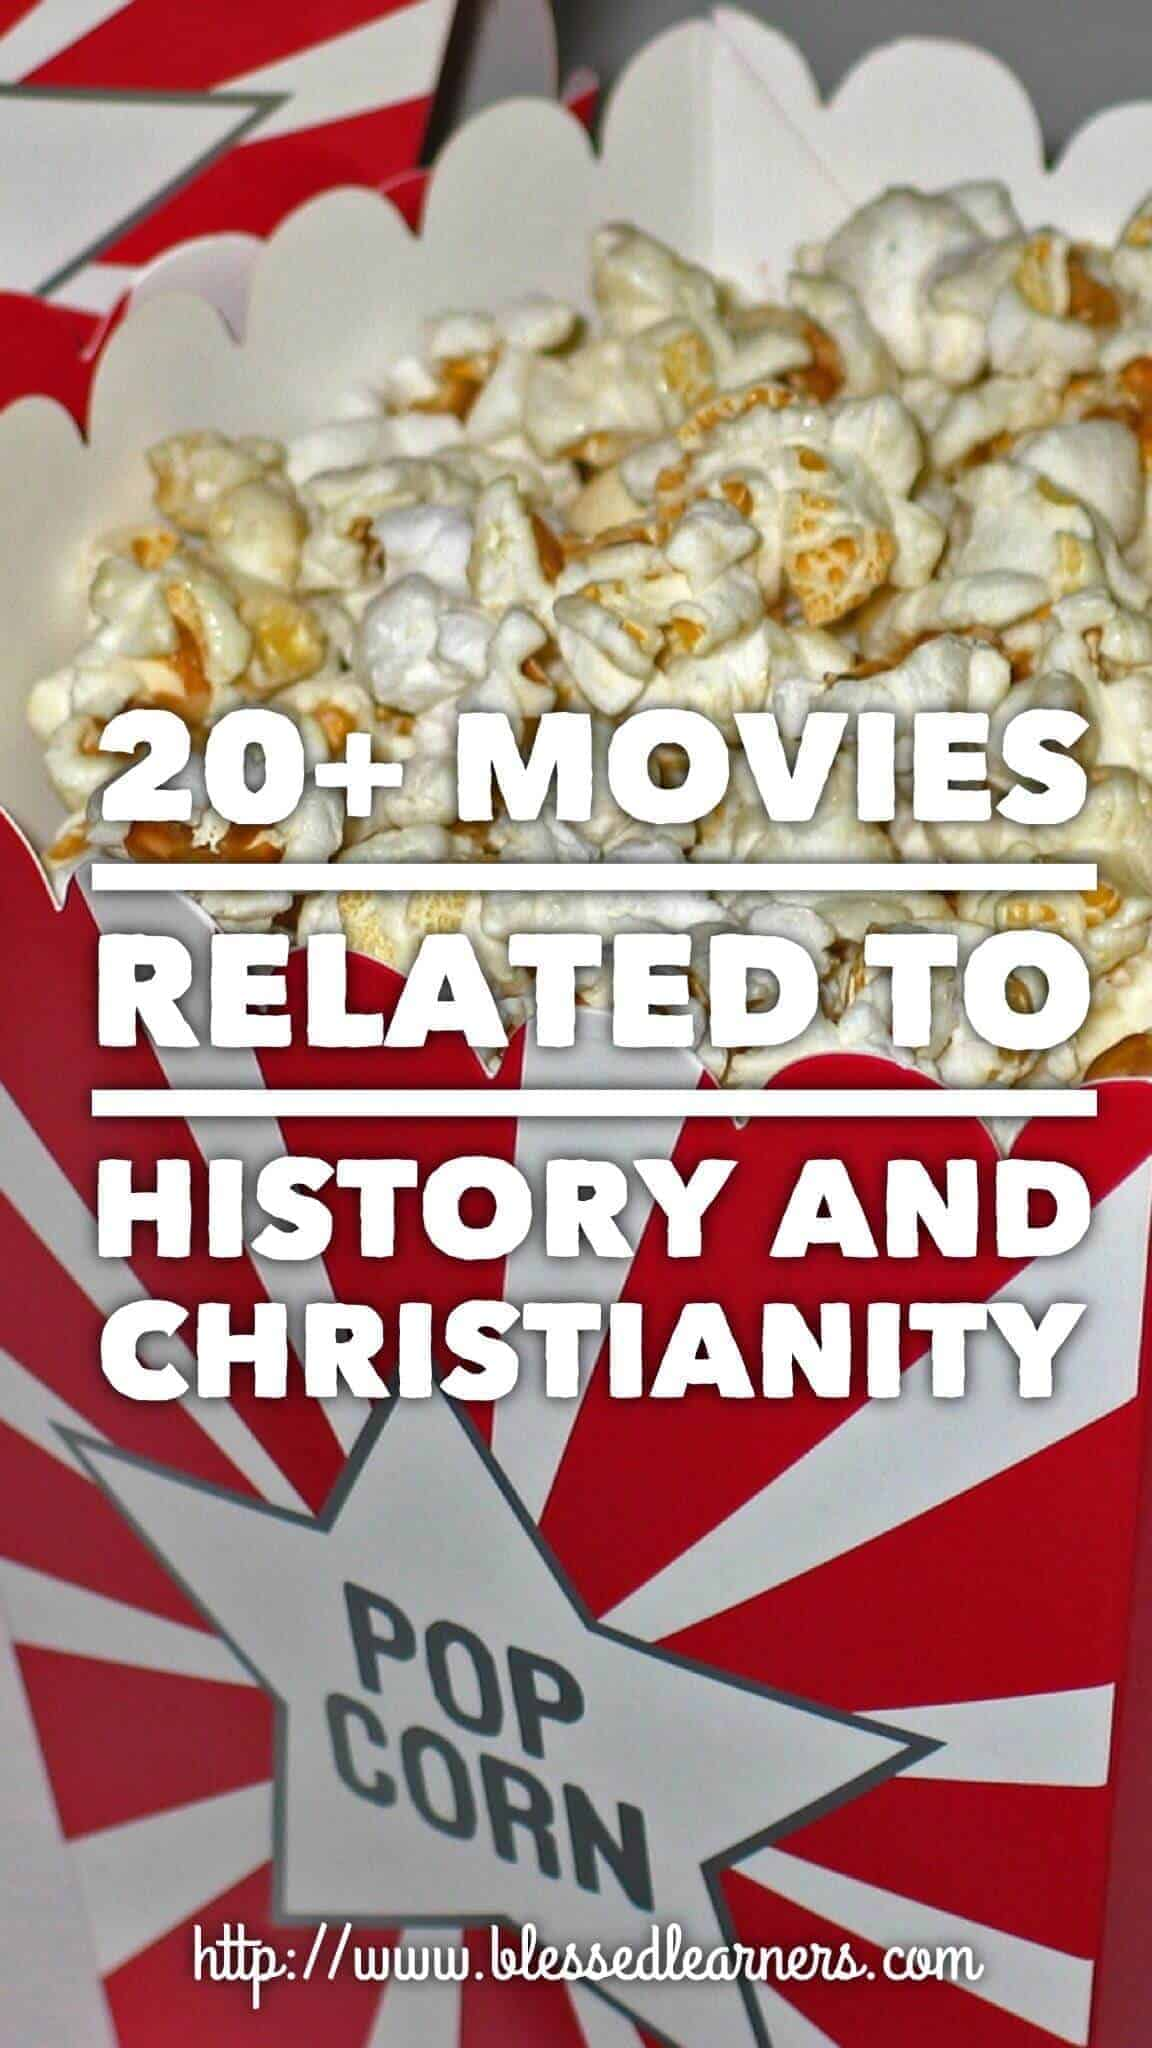 20 Movies Related to History and Christianity